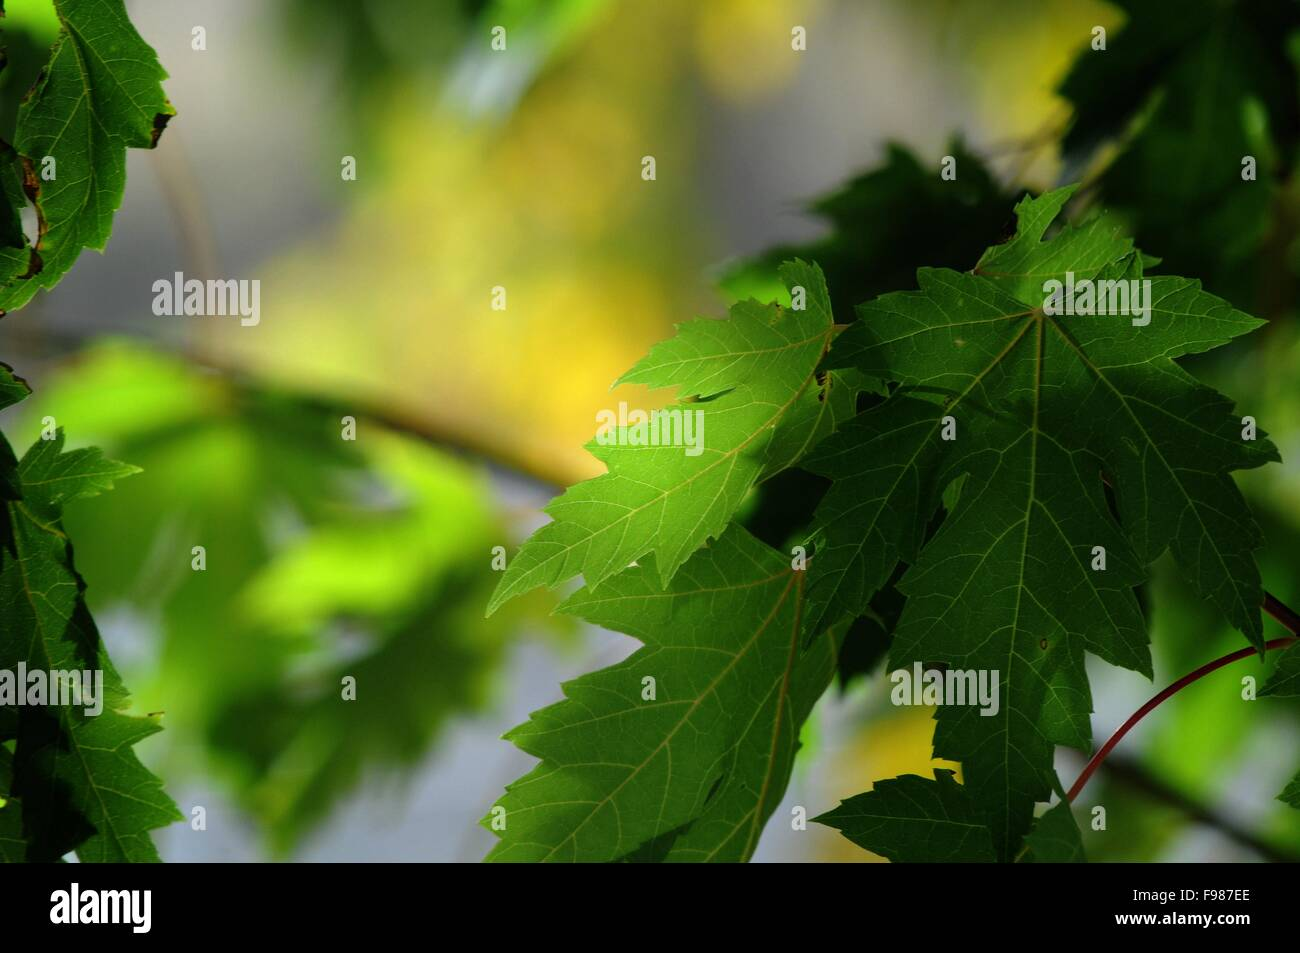 Maple leaves in summer - Stock Image